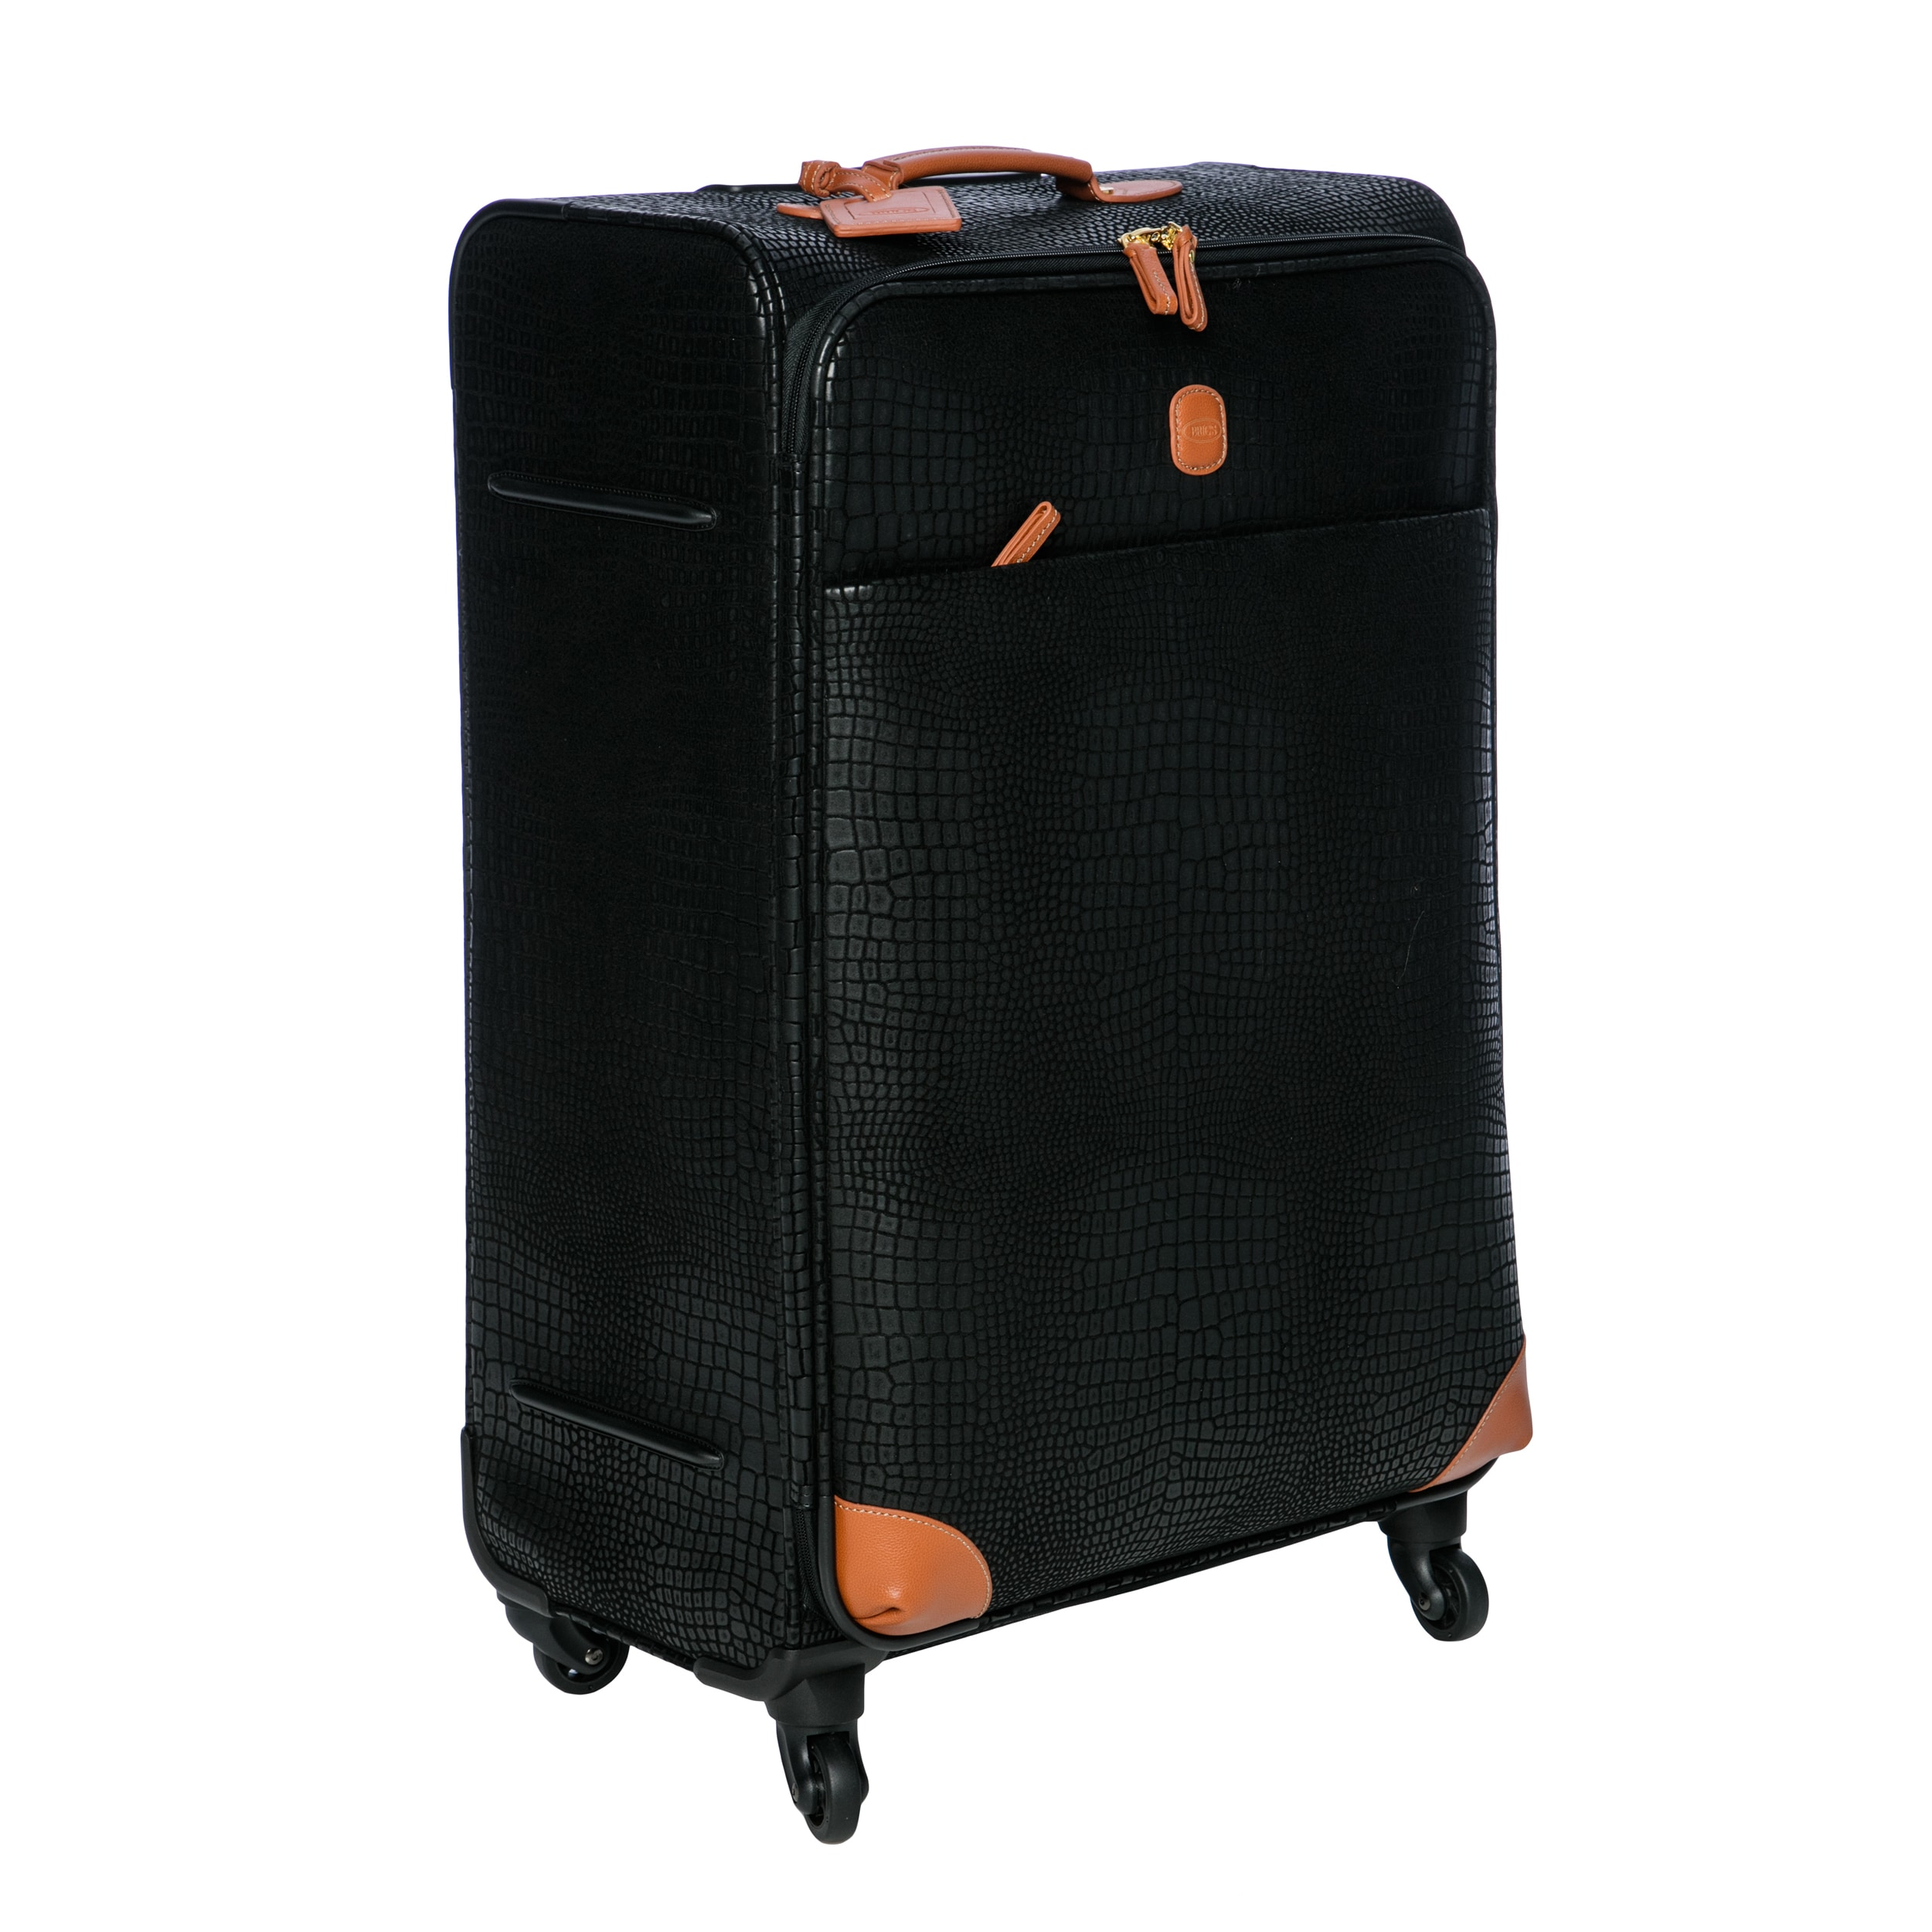 44dc6852ca Shop Bric s My Safari Black 30-inch Spinner Suitcase - Free Shipping Today  - Overstock - 10658246